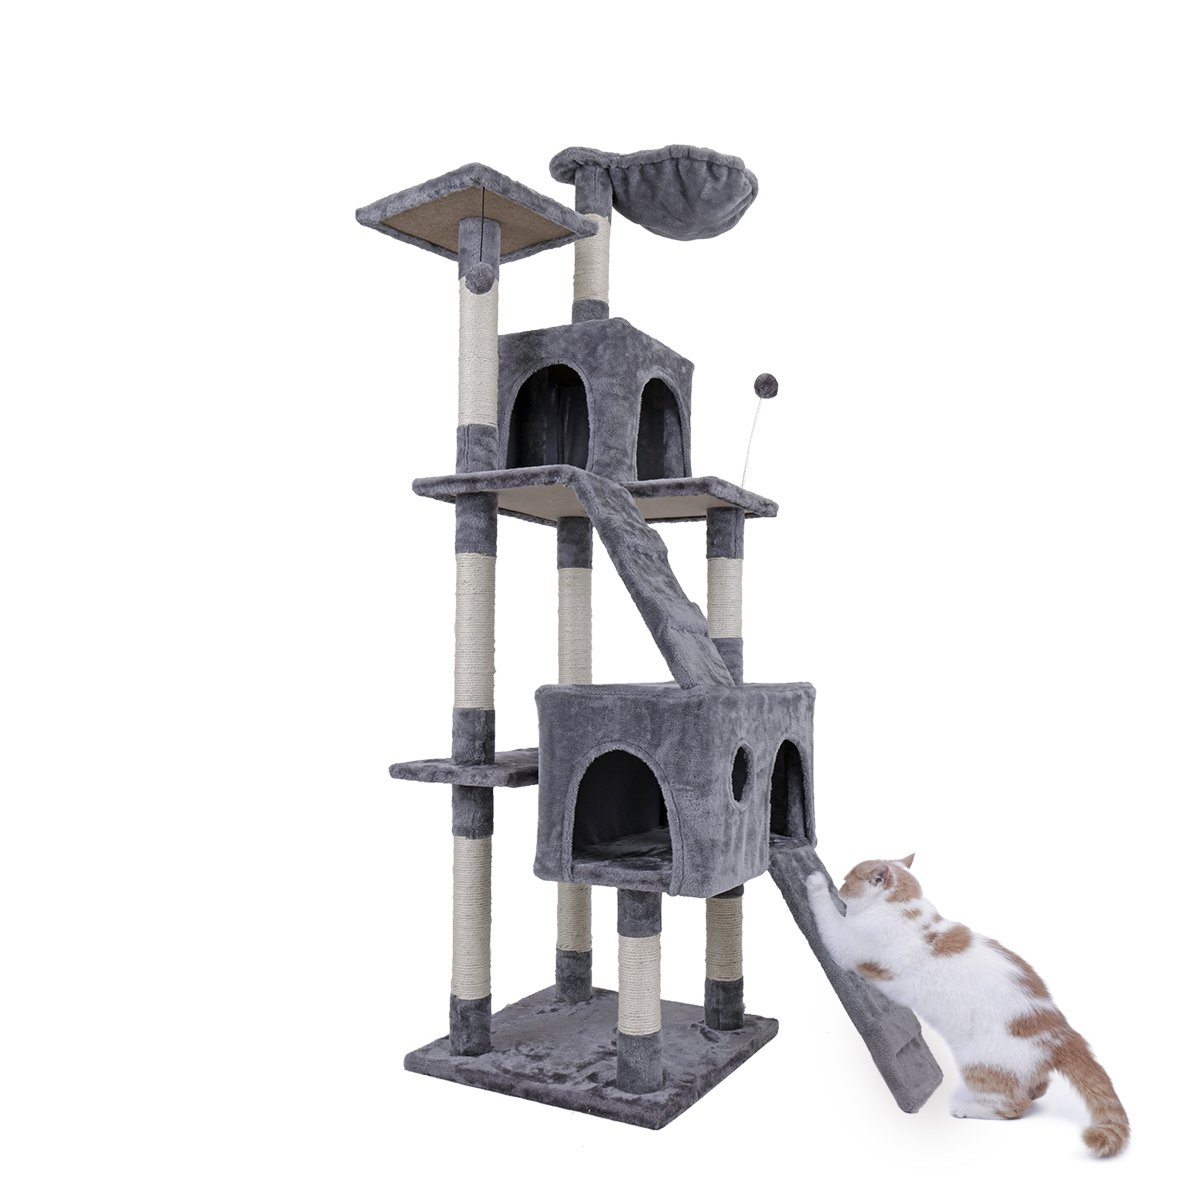 PAWZ Road 68'' Cat Tree Activity Tower Condo Stand with Deluxe Scratching Posts, Natural Sisals Grey